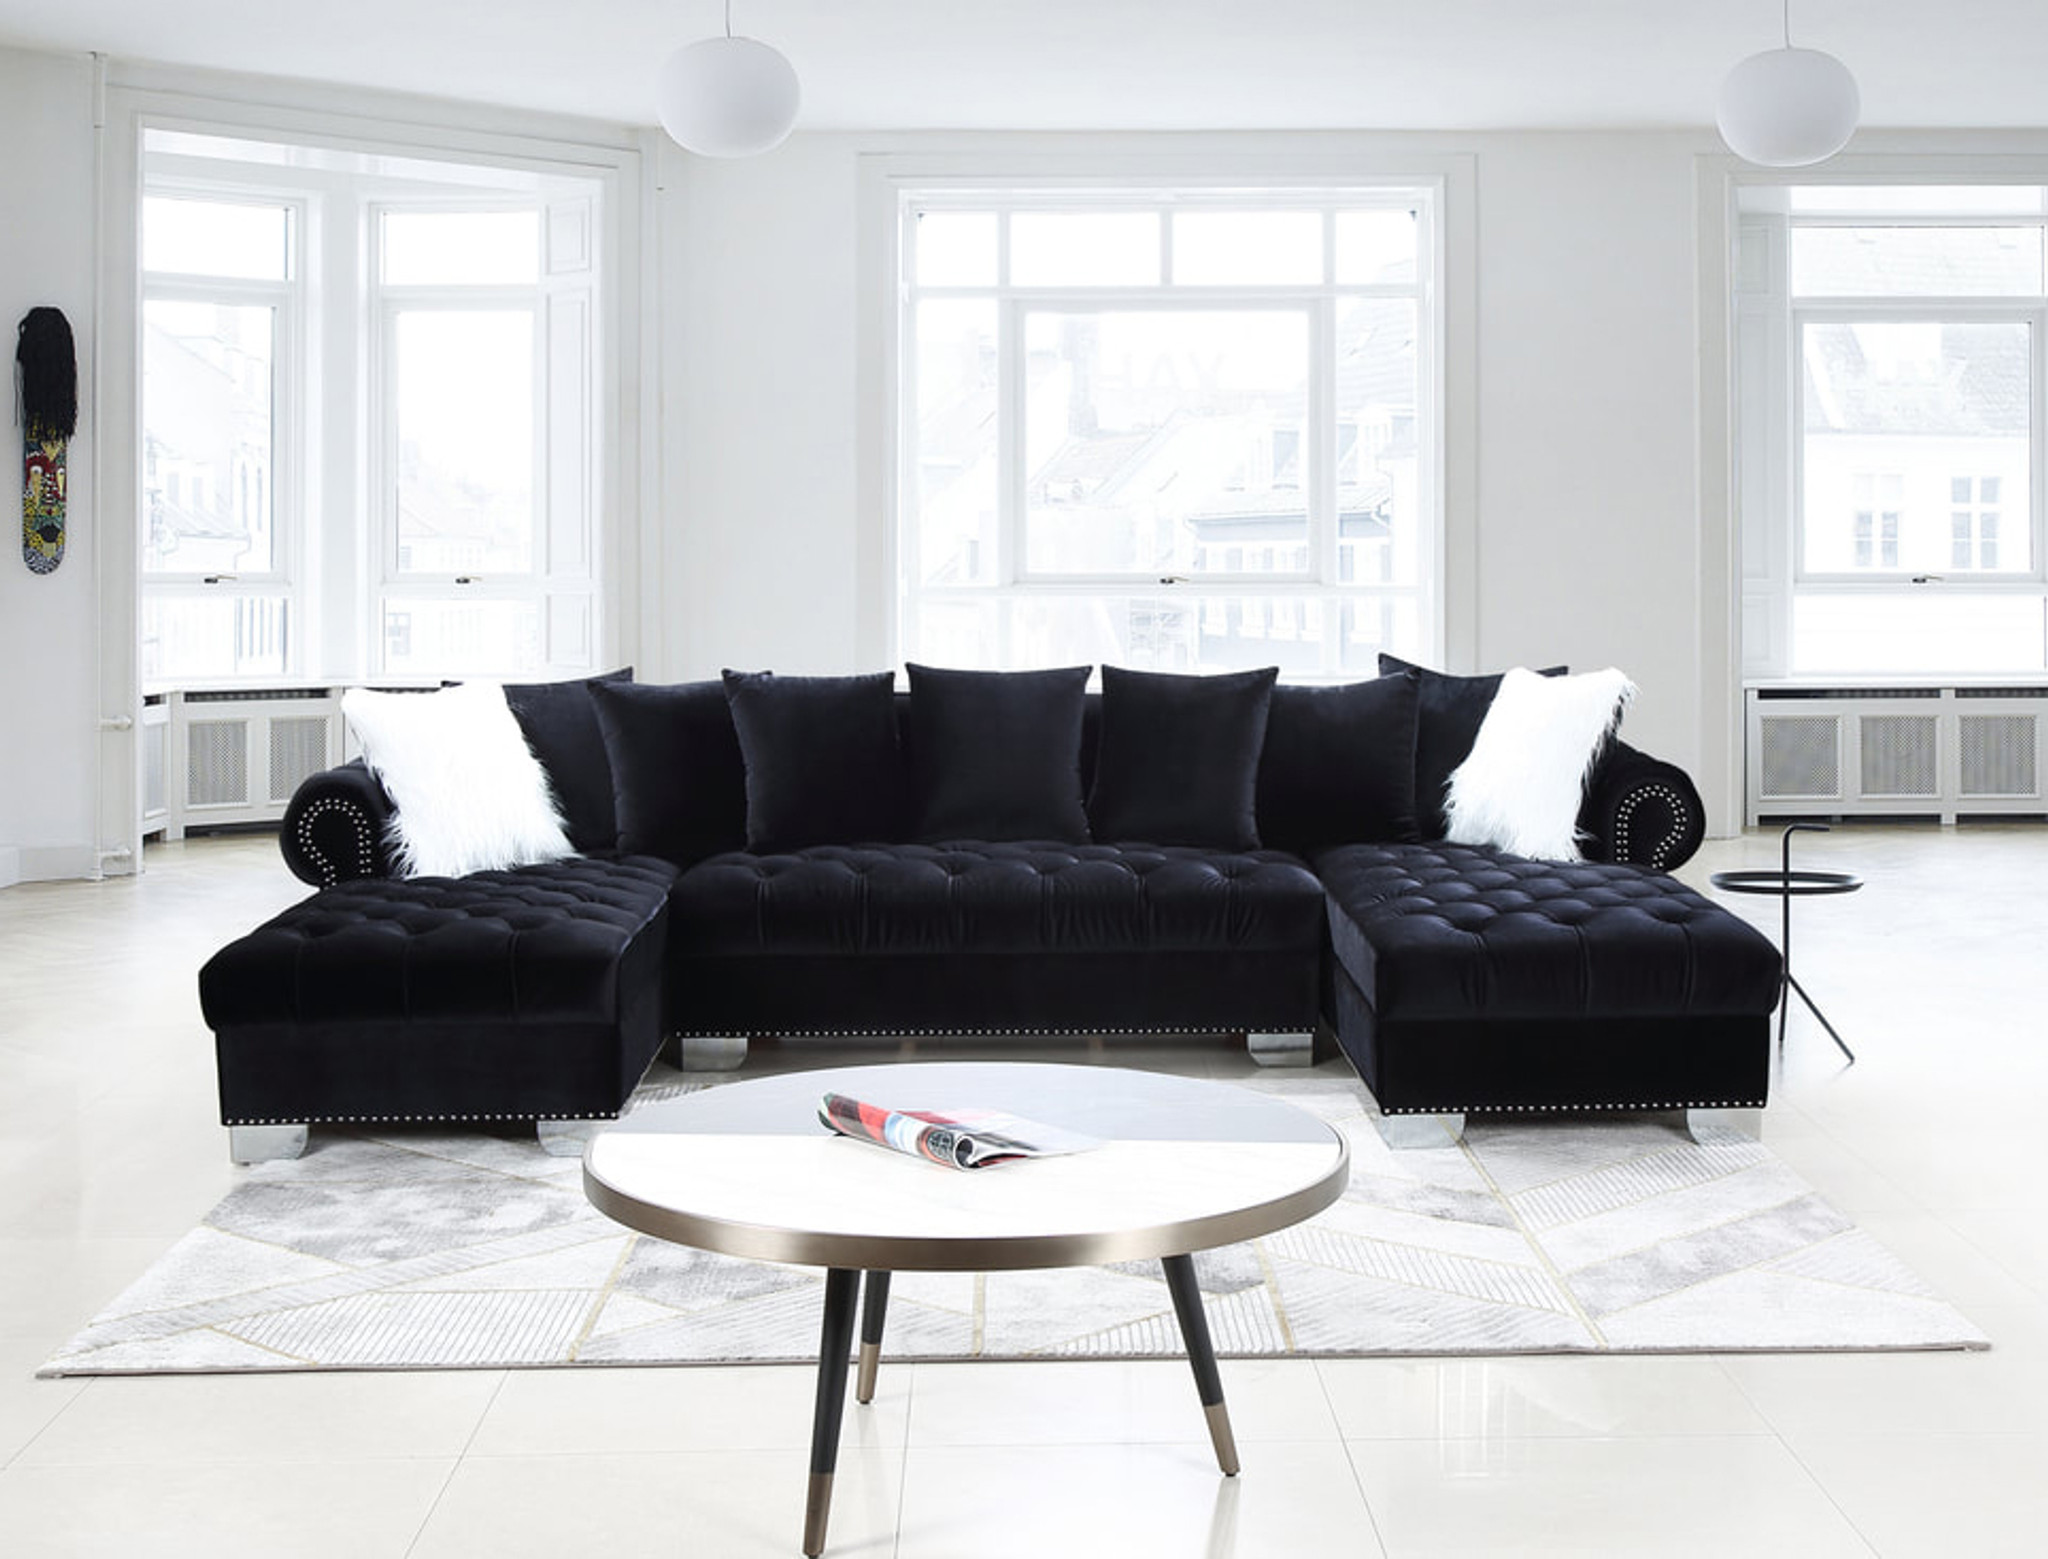 Picture of: 3 Pcs Kim Sectional Sofa And Loveseat In Black Color With Accent Pillows Happy Home Industries Houston Texas